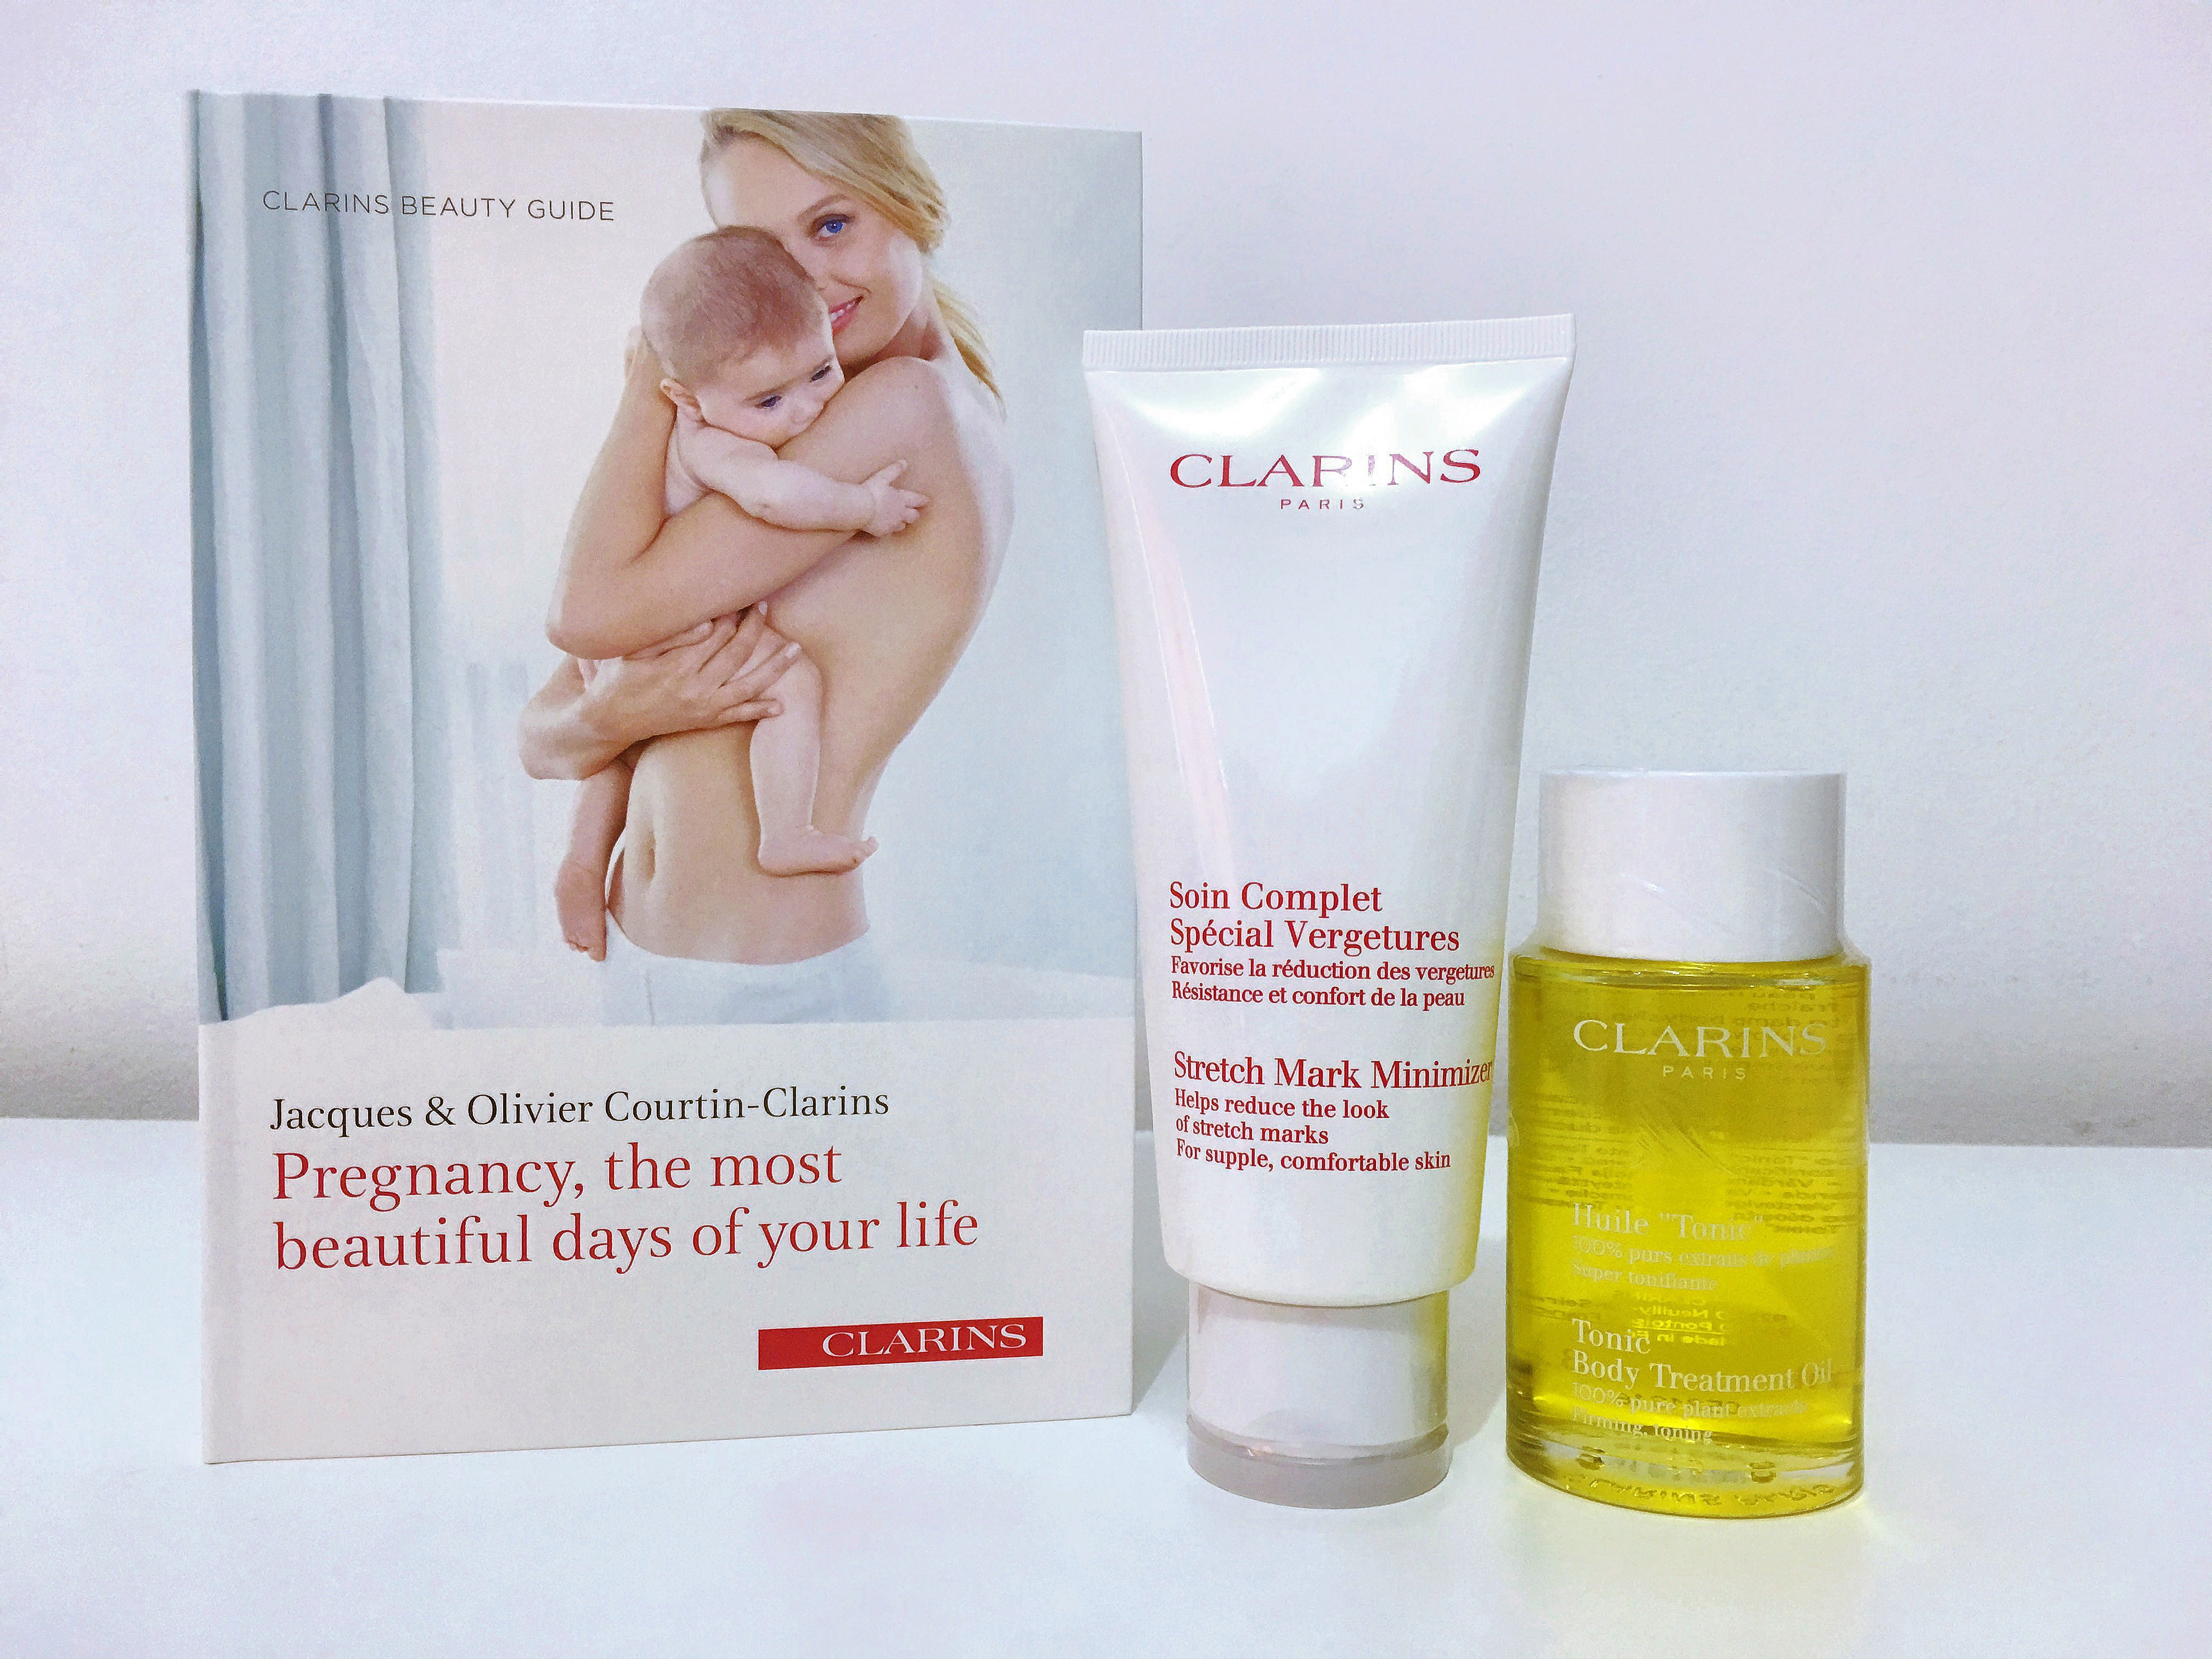 Clarins by Clarins [ Pyungkang Yul ] Essence Toner 200ml with 2 Pyunkang Yul Skincare Sample Kits.